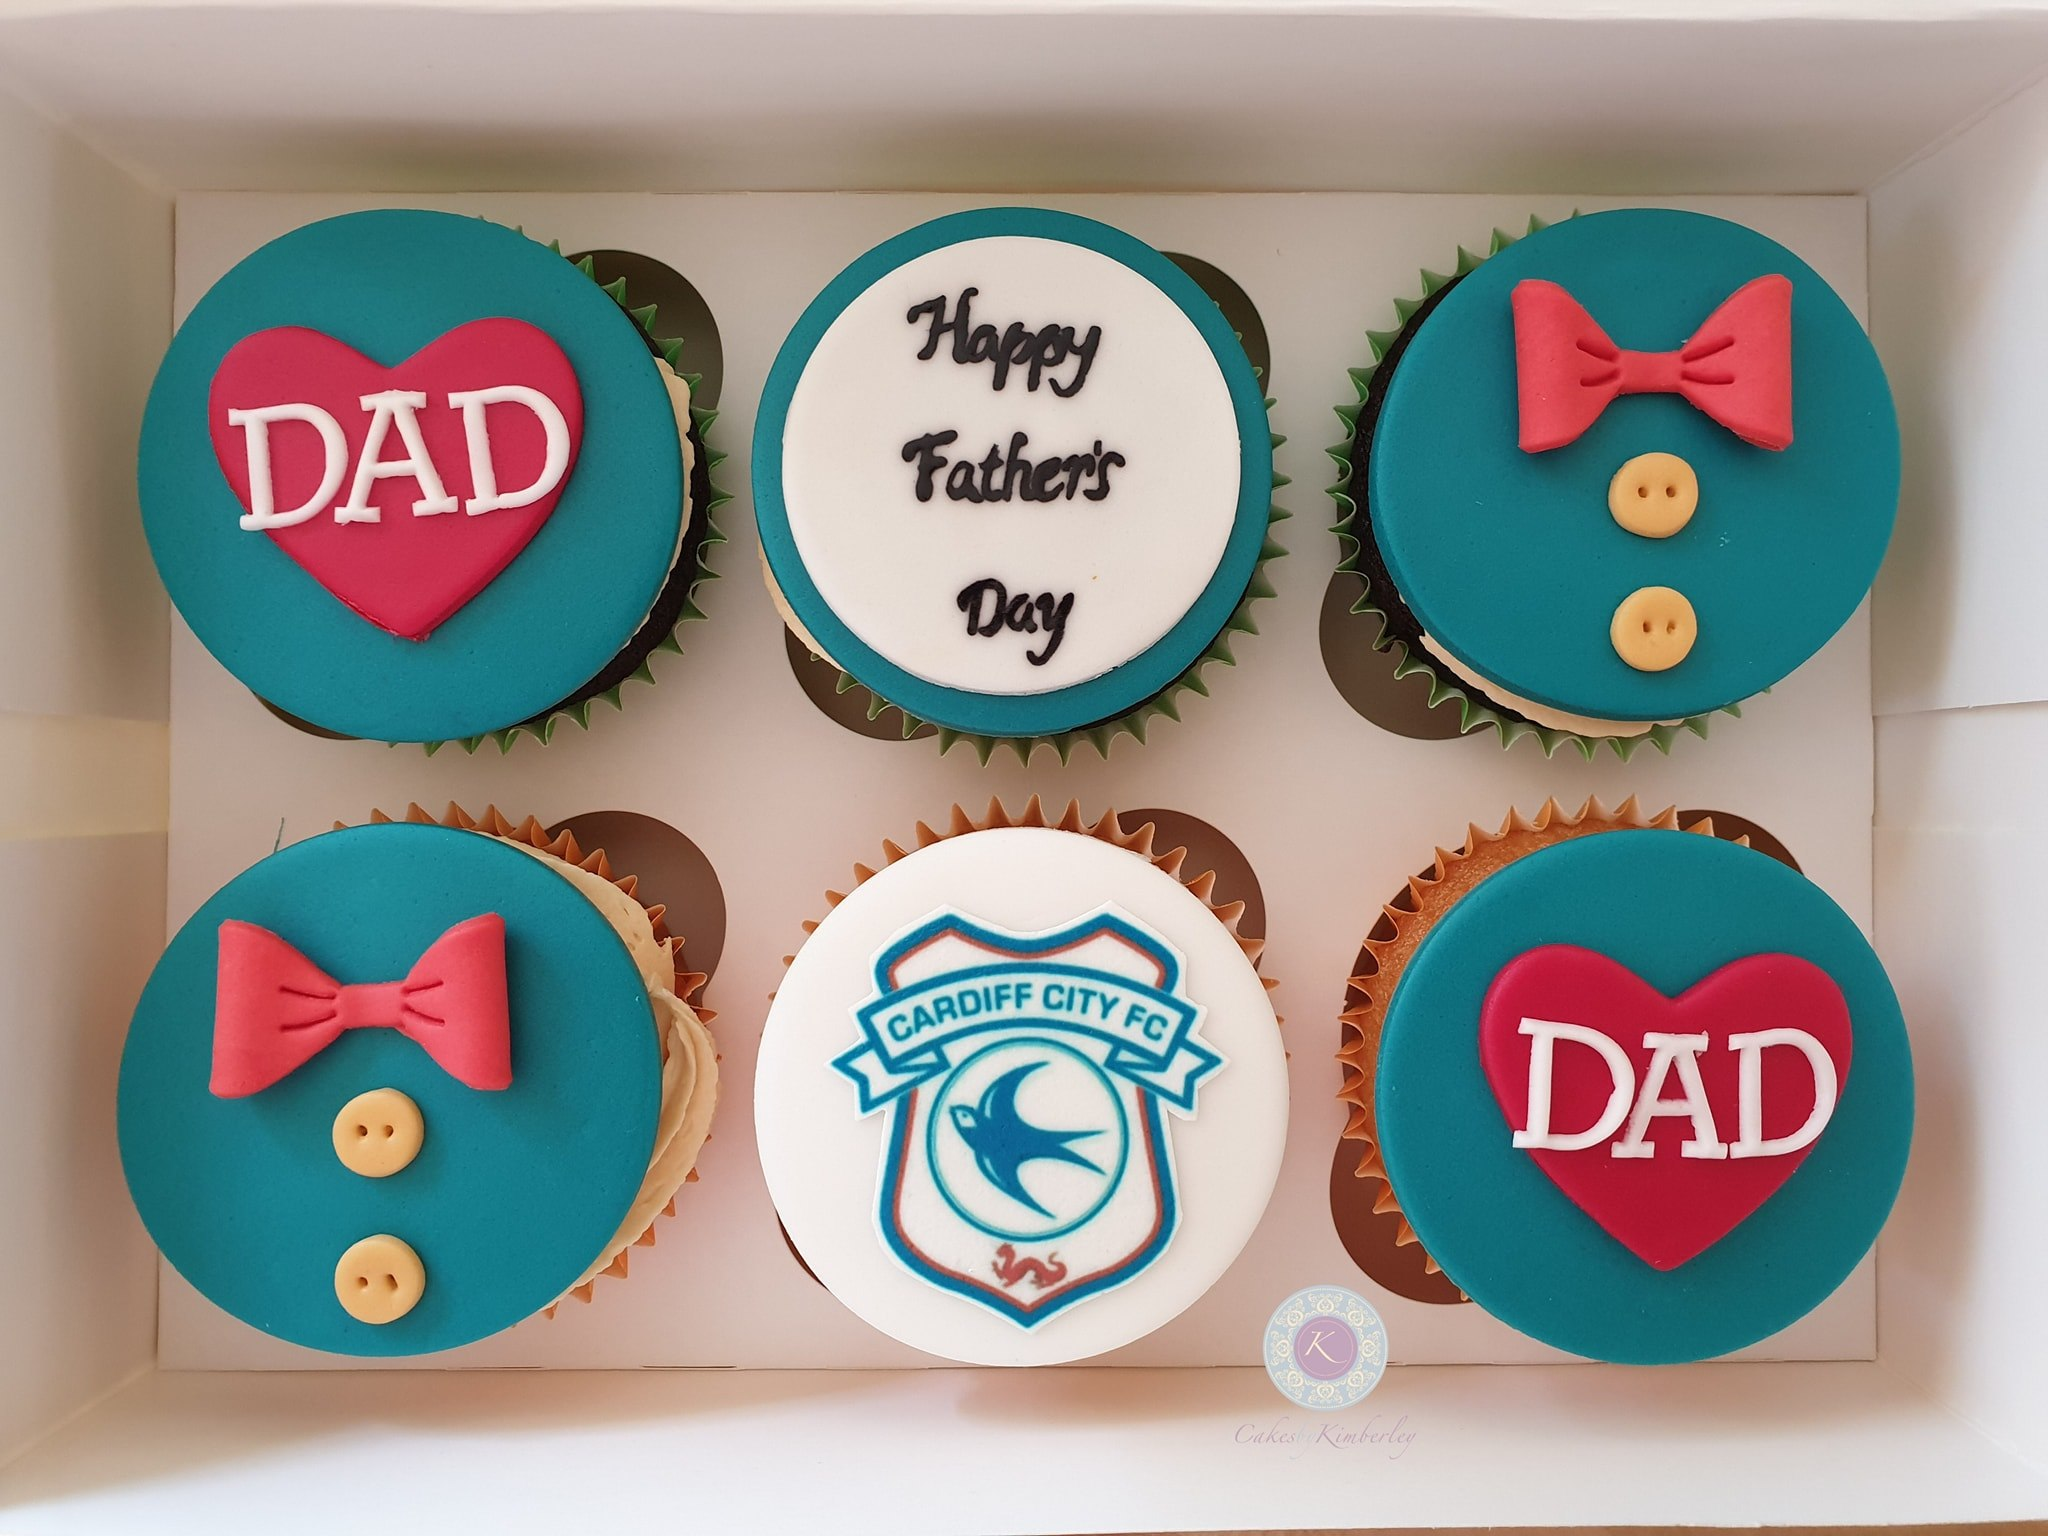 Cupcakes - Fathers day Cardiff